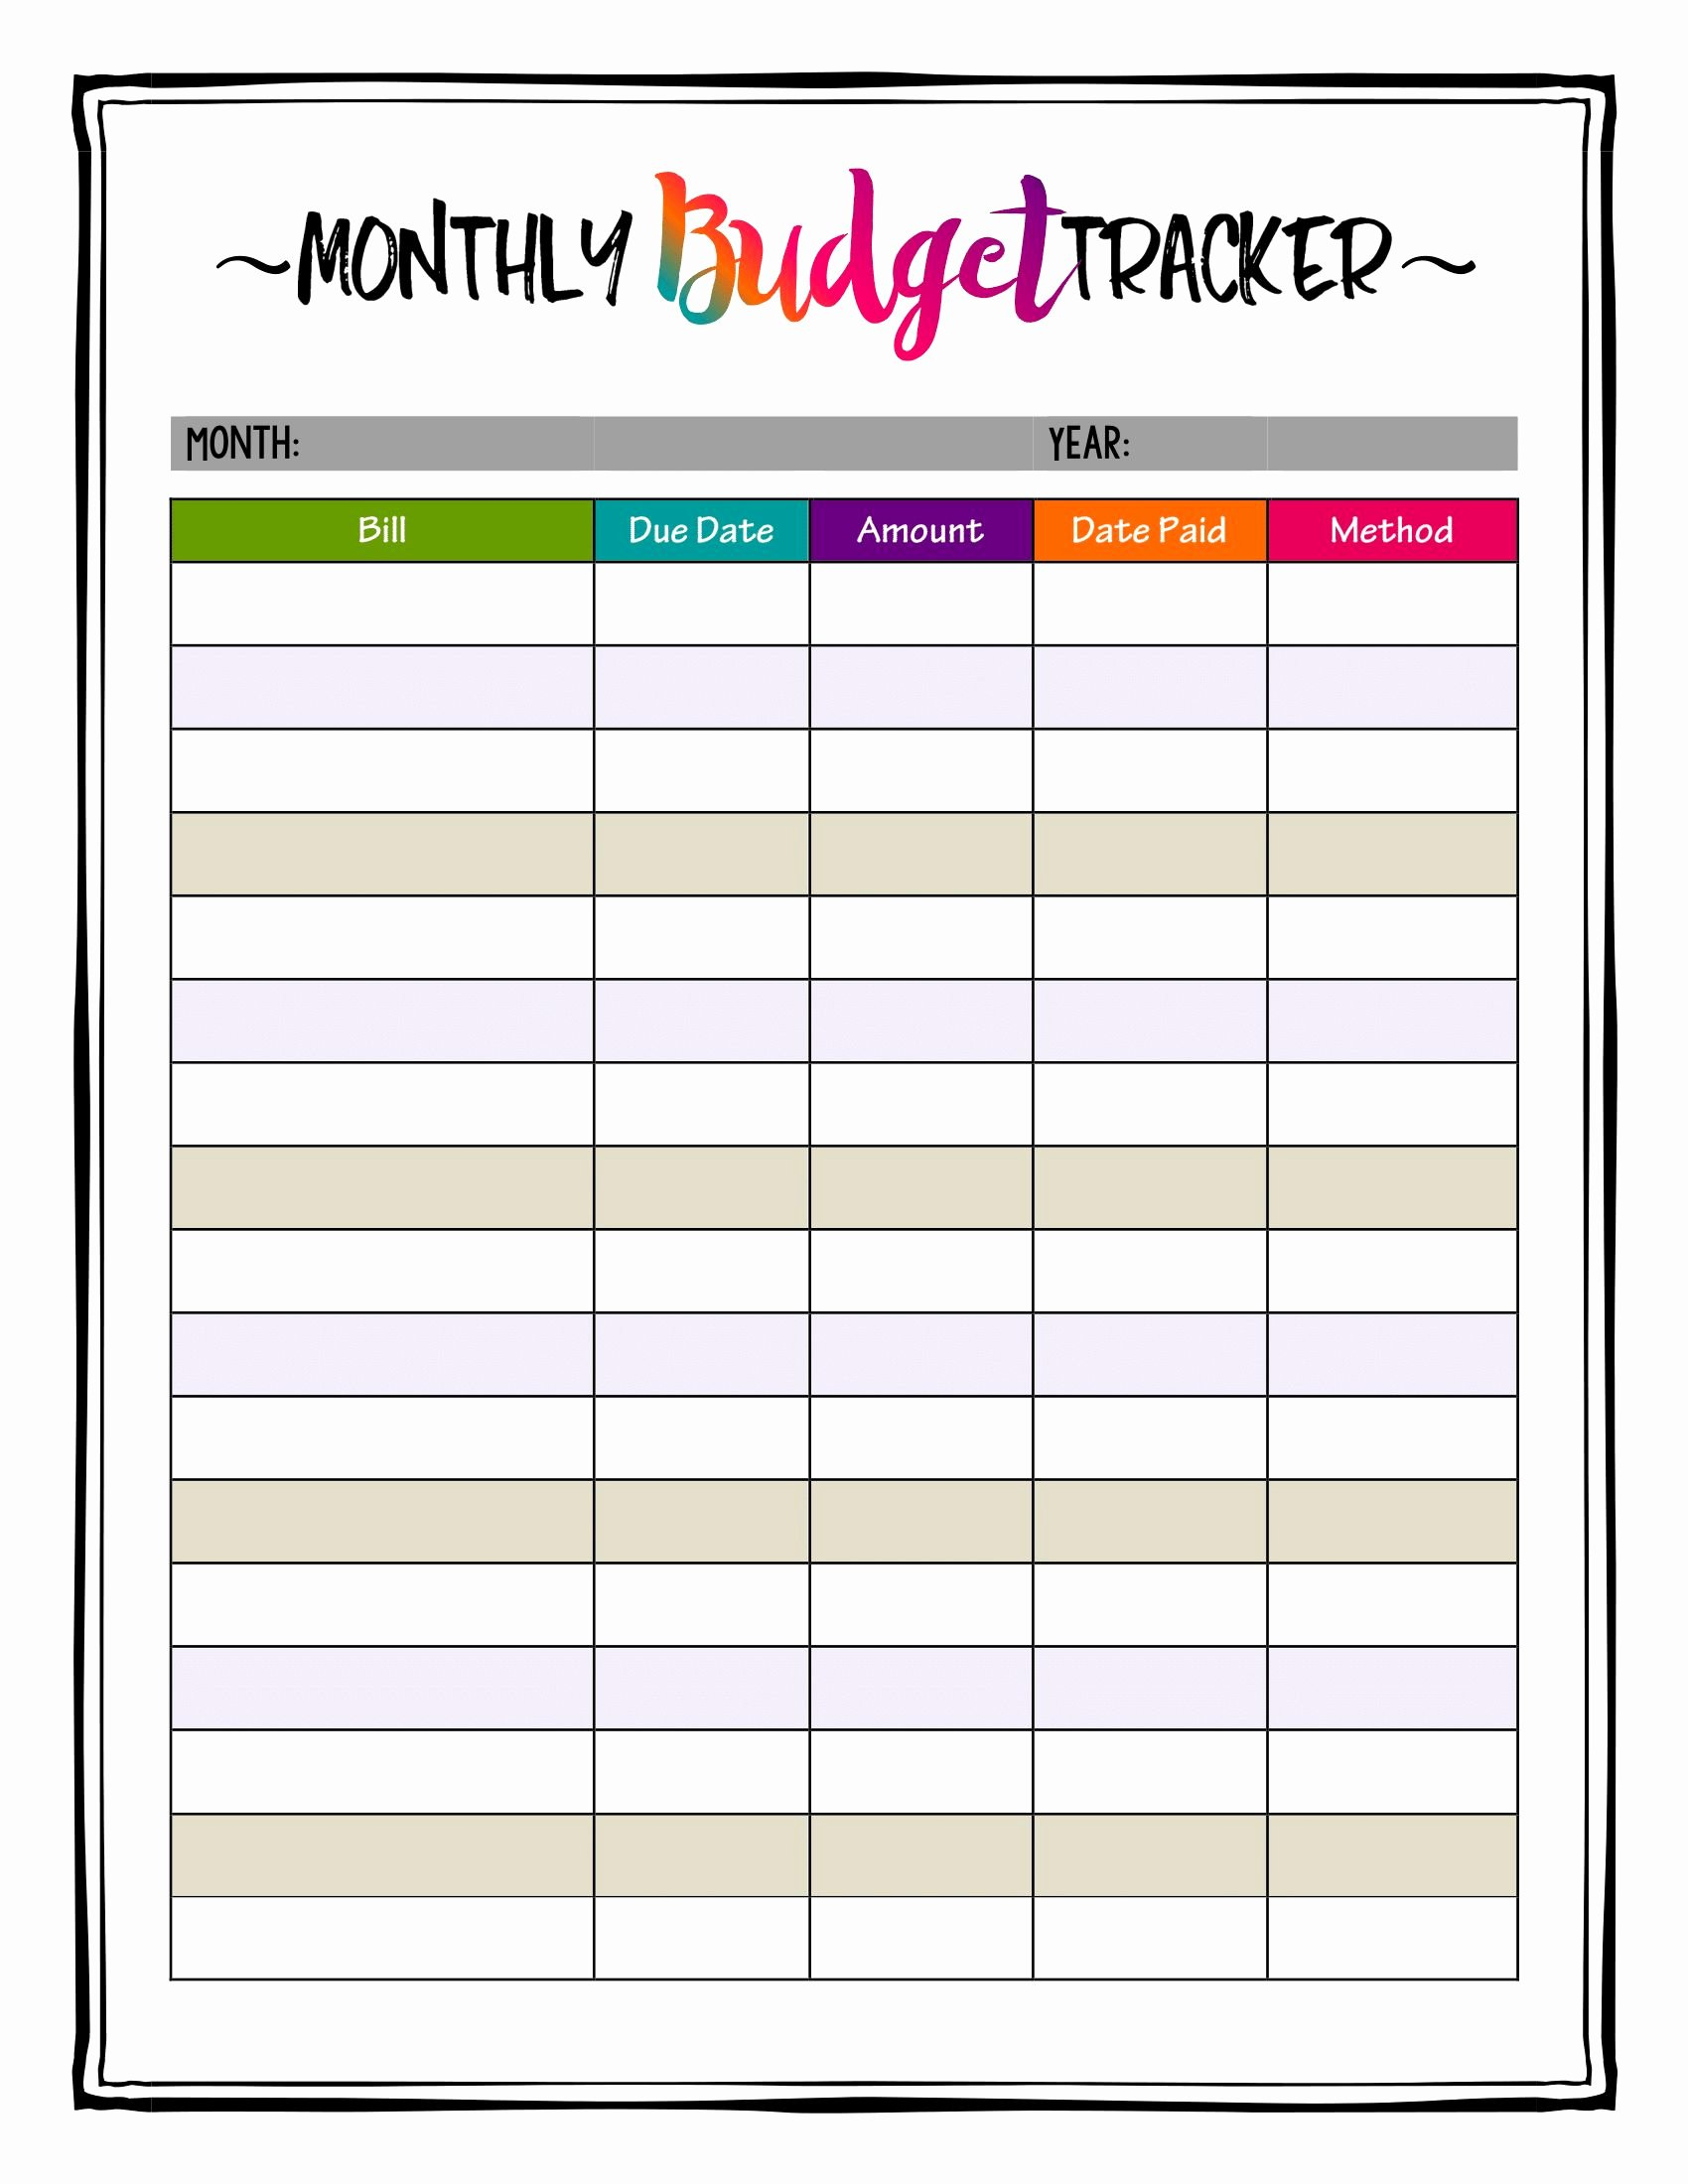 Monthly Bill Calendar Template Elegant How to organize Bills Super Bright Bud Tracker Makes